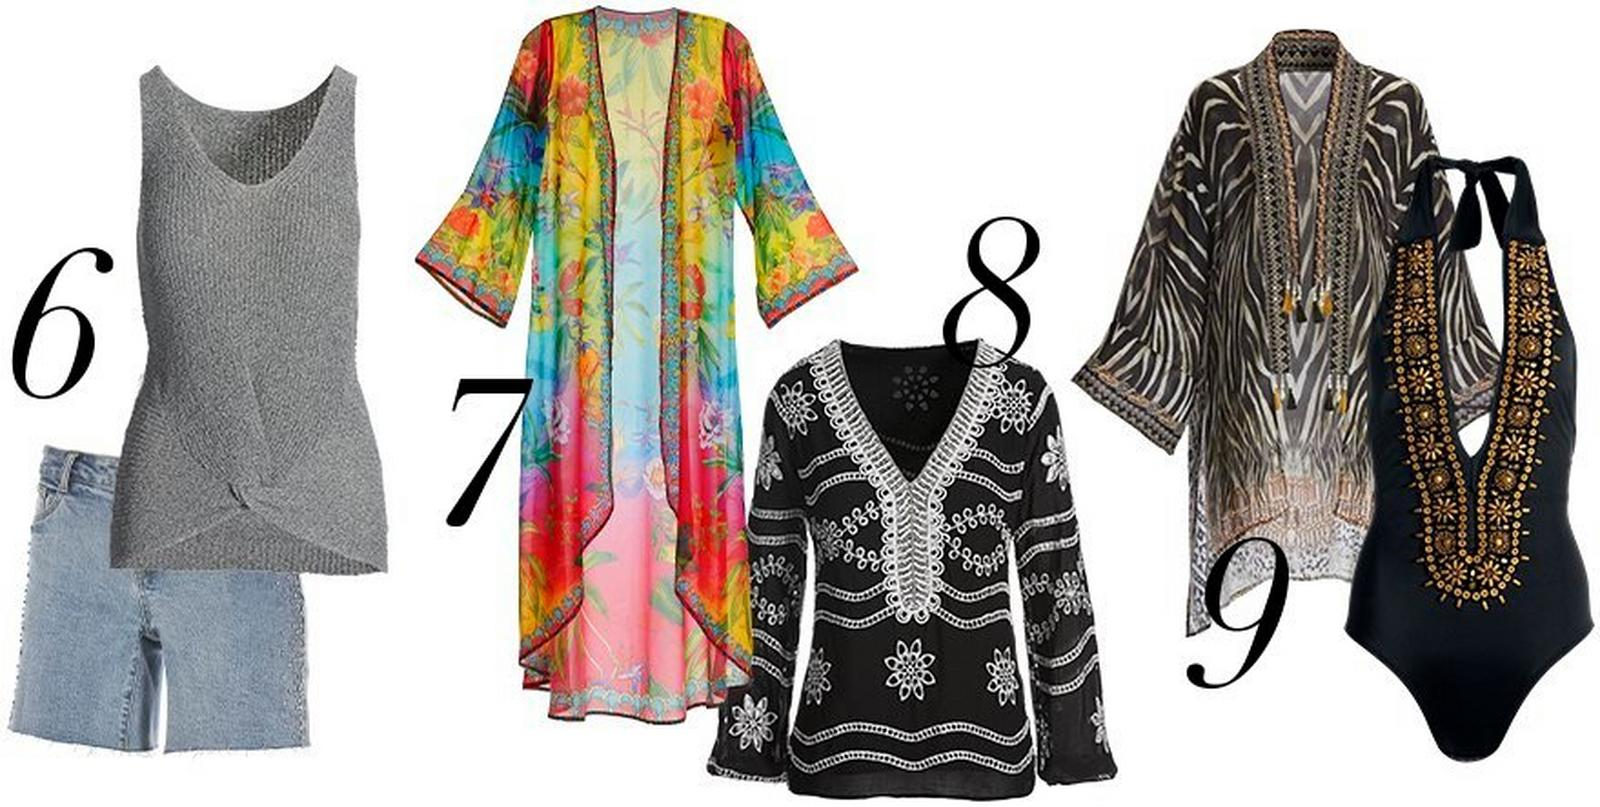 left to right: gray sleeveless sweater and embellished denim shorts, multicolored floral duster, black and white eyelet tunic top, zebra print embellished swim cover up and a black and gold deep-v one piece swimsuit.